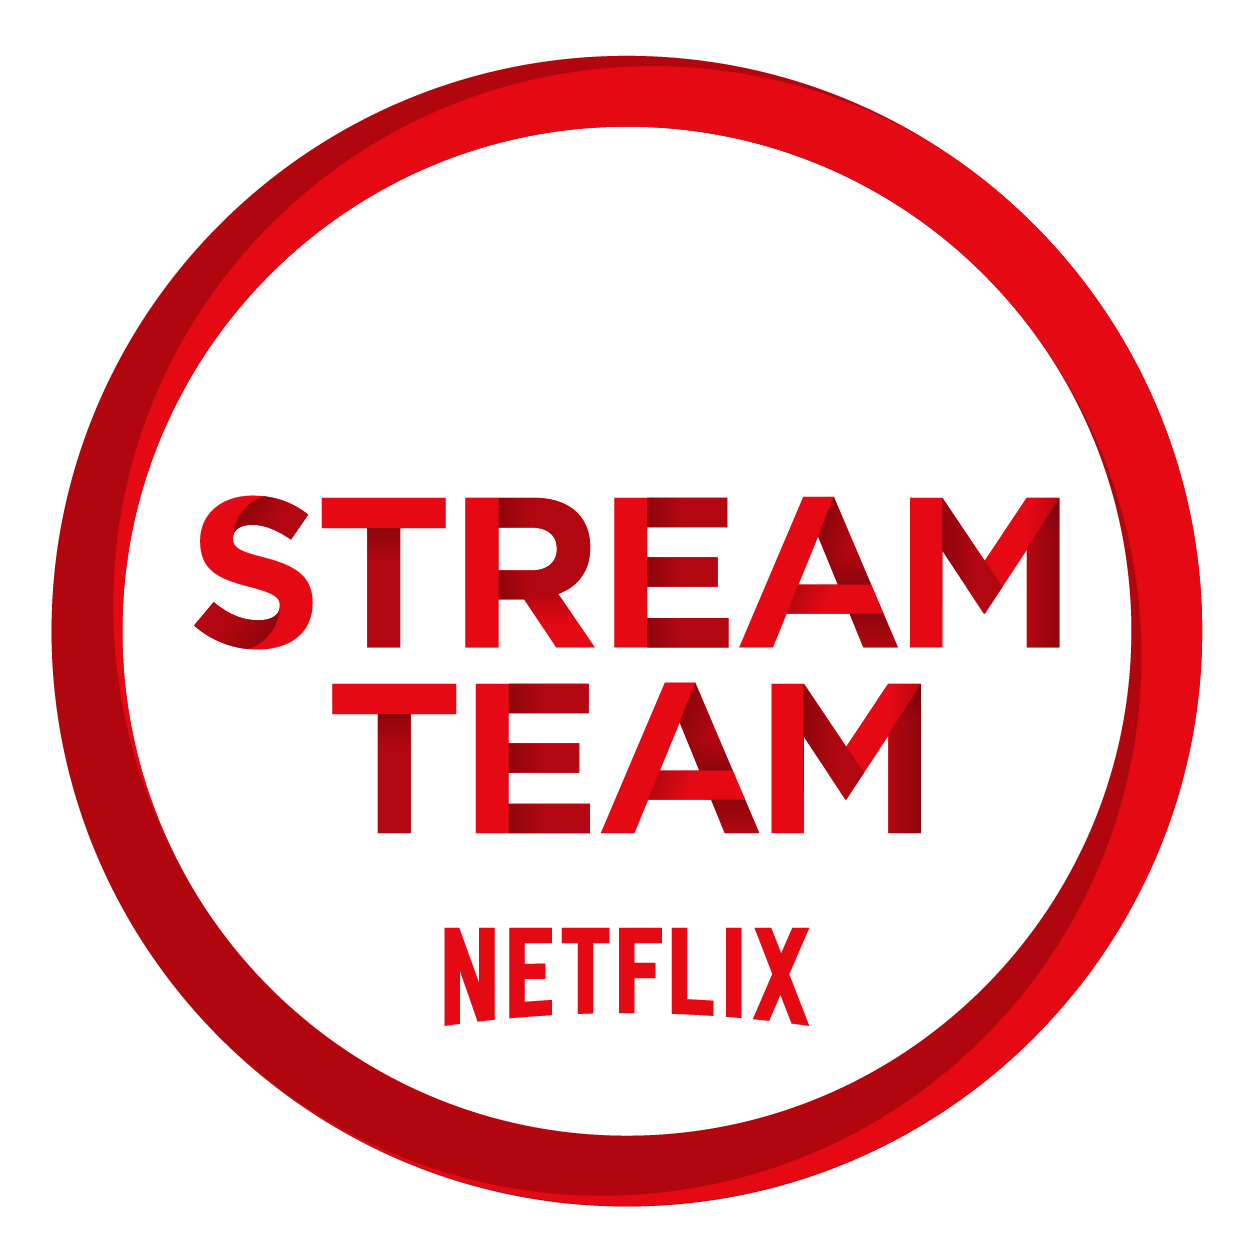 I'm on the #StreamTeam